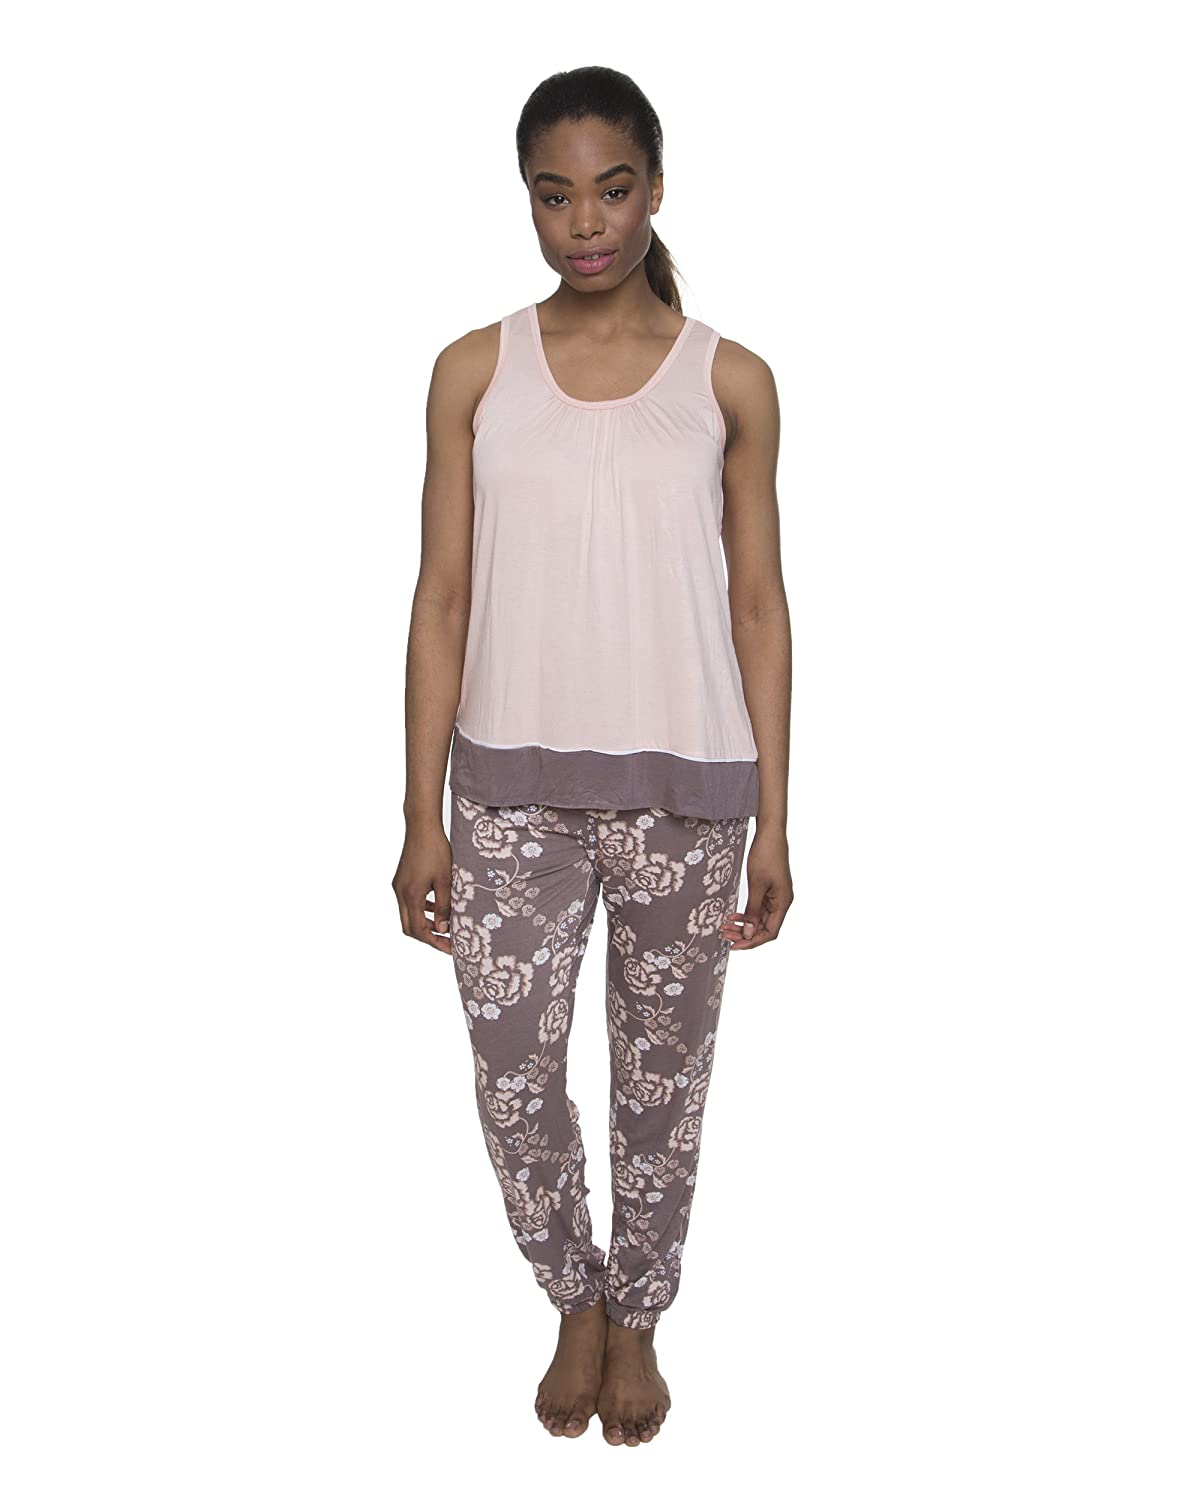 29dbe856 2 PIECE SET: Perfect for sleeping or lounging, this fashionable 2 piece set  comes with a lightweight and soft shirt and matching pants for a  coordinated ...